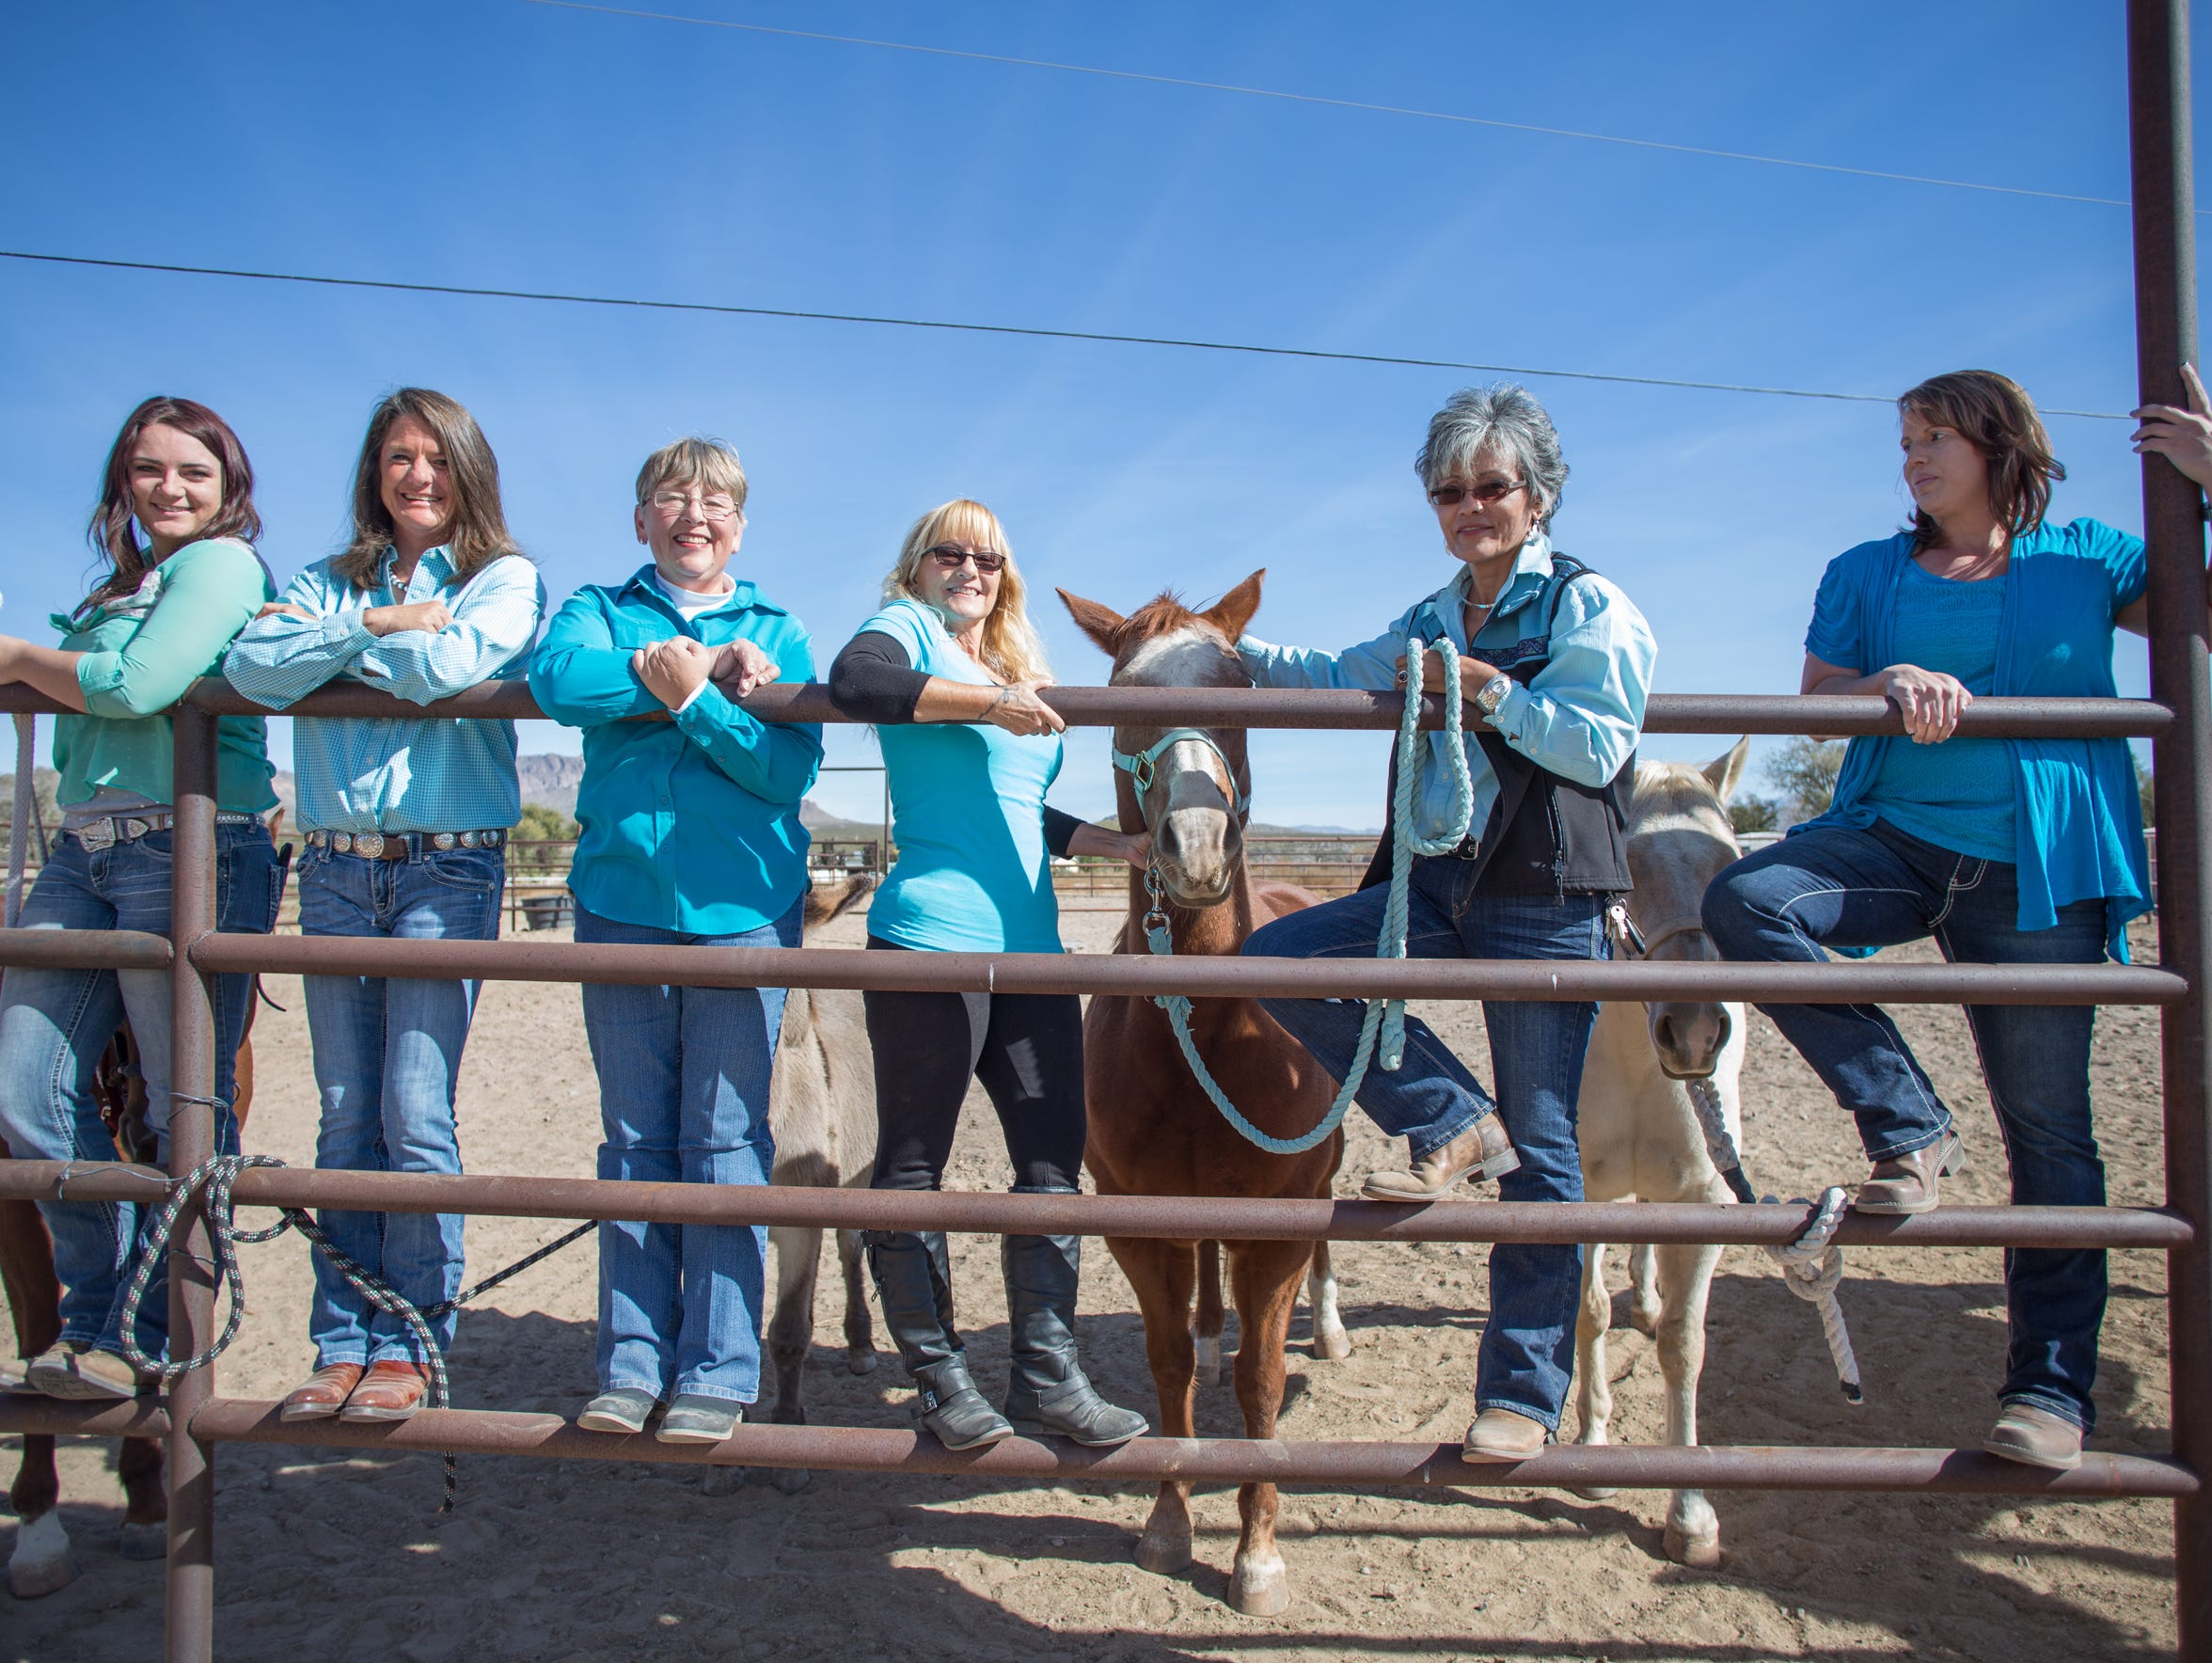 Pictured are the staff of Equine Assisted Programs